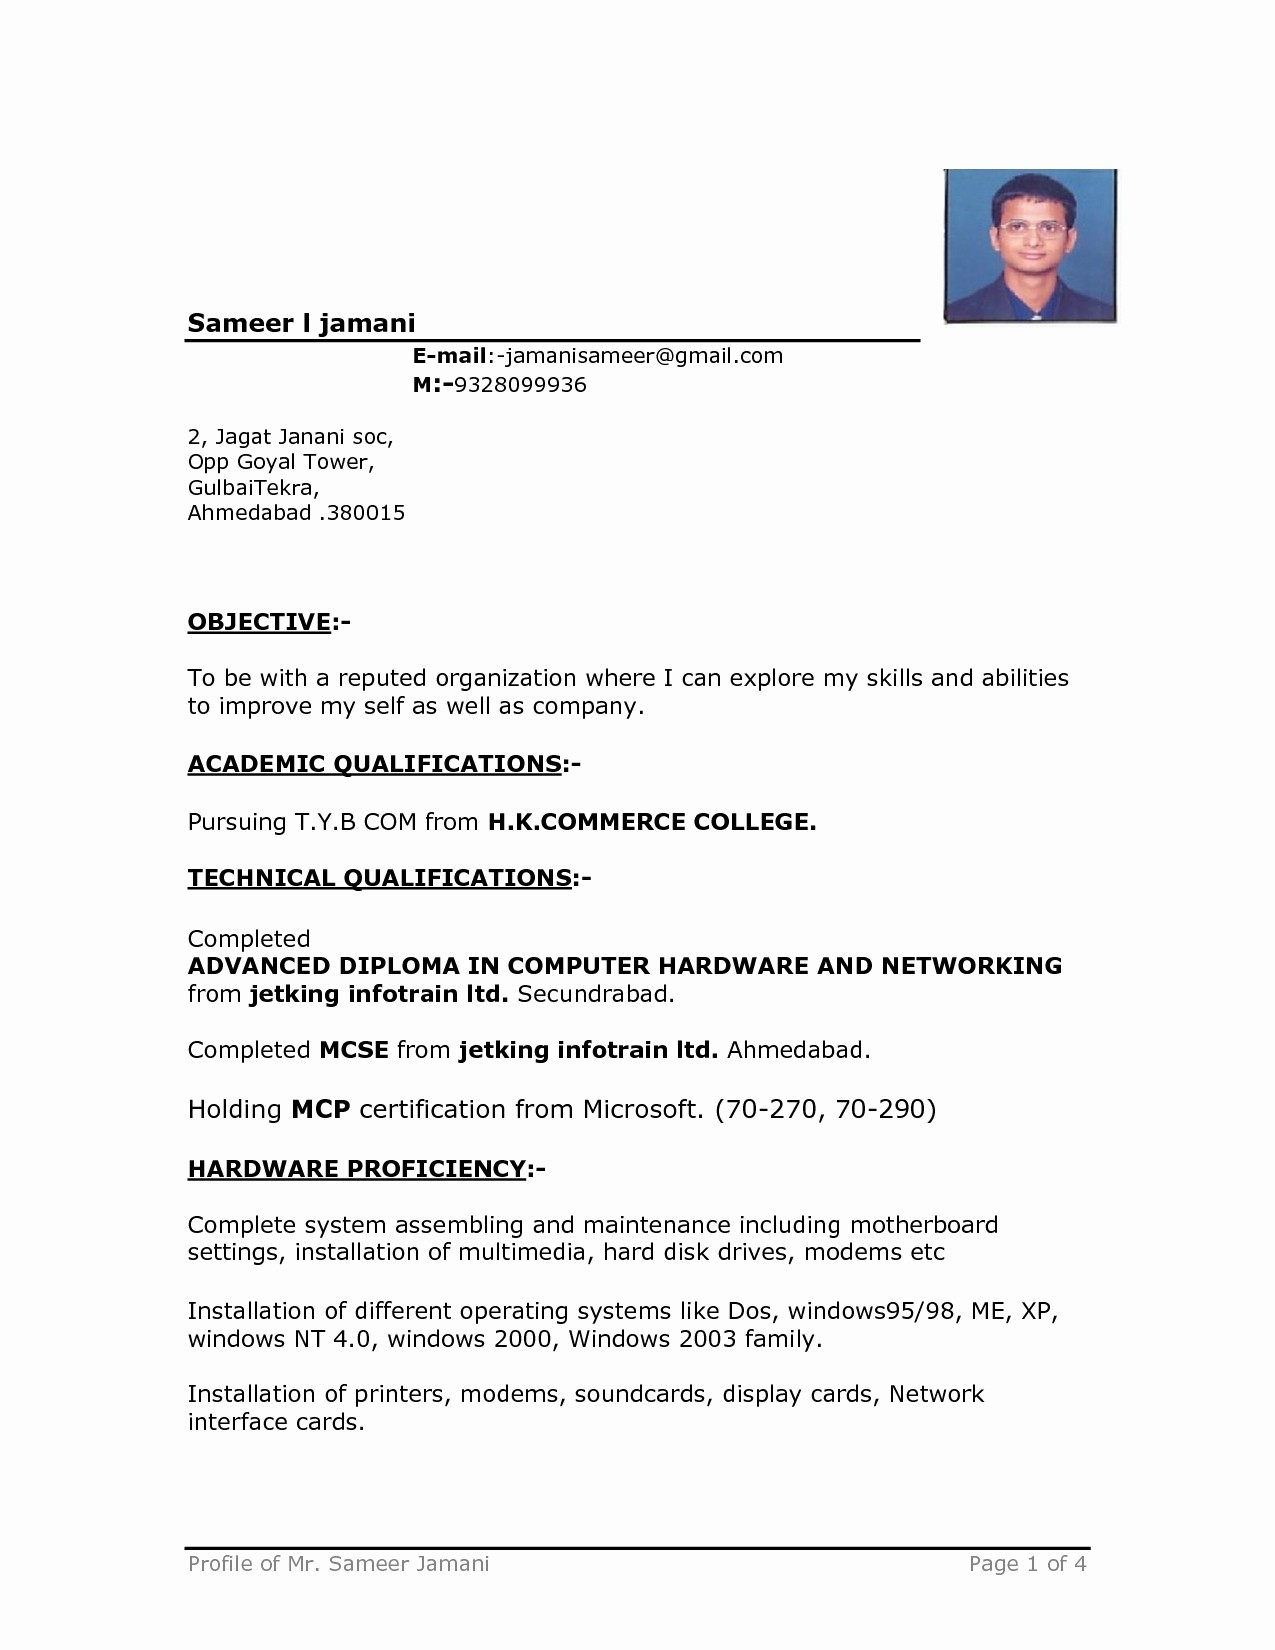 Ms Office Word Resume Templates Awesome Resume Template Microsoft Word 2017